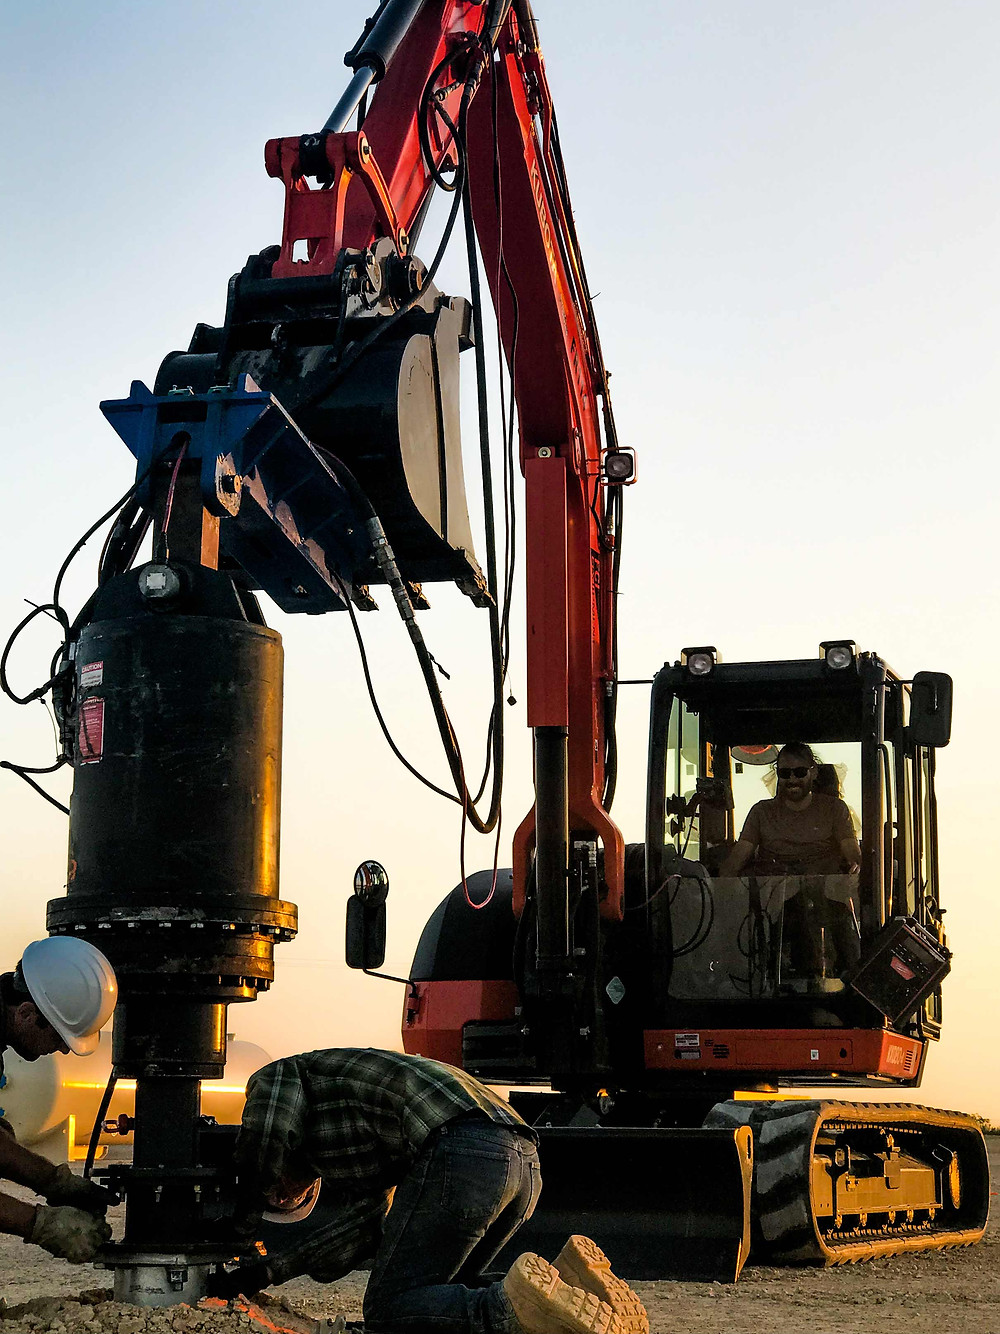 Screw piles being installed by an excavator and crew at a petroleum facility in Texas.